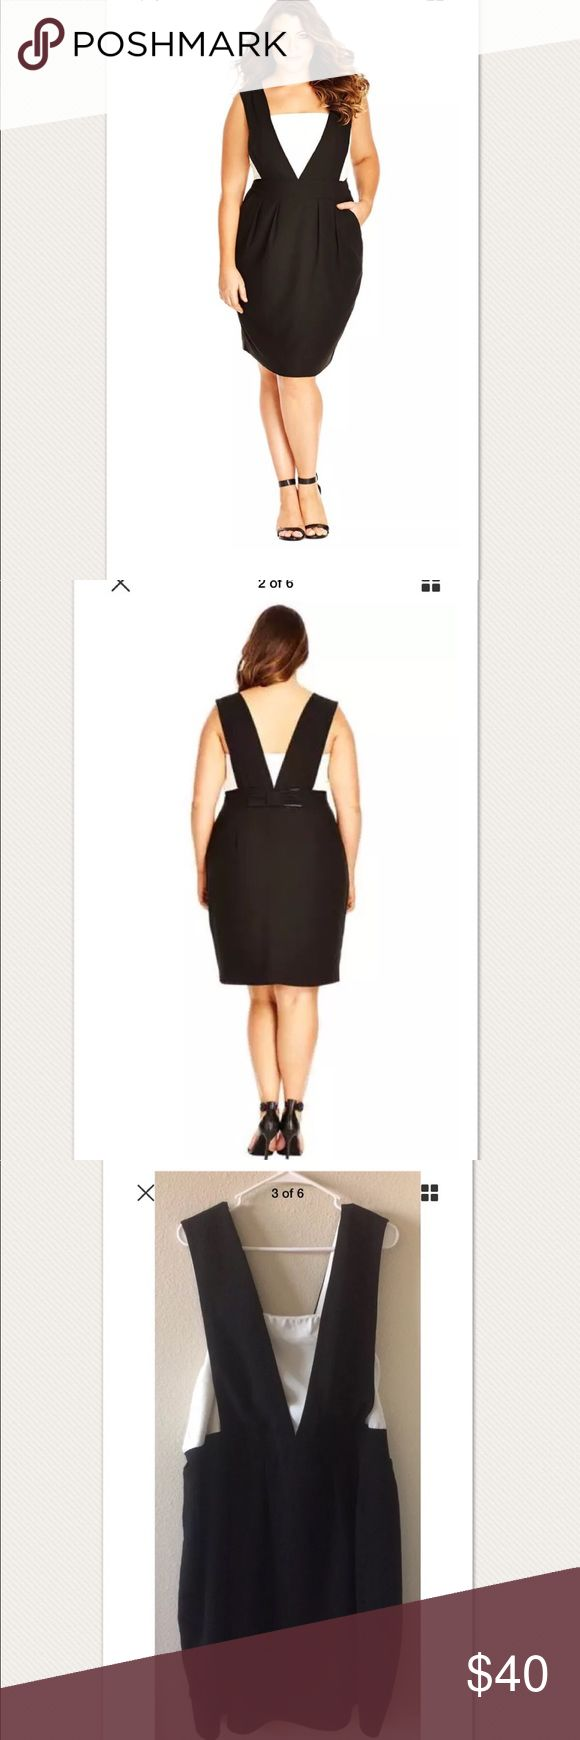 """$119 City Chic Black Tiffany Bow Back Dress $119 City Chic Black Tiffany Bow Back Pinafore Dress ~Size XL/22~  Sold out! Retails for $119 + Tax  Very good condition, gently worn Black and cream Sleeveless Zips on side wide supportive straps  Size XL/Plus size 22  Measures approximately: total length 43"""" bust across 22.25"""" 100% polyester  Washed and ready to wear!   PRICED TO SELL FAST! PLEASE ASK ANY QUESTIONS BEFORE PURCHASE, THANKS CHECK OUT MY OTHER DESIGNER HANDBAGS AND CLOTHING! City…"""